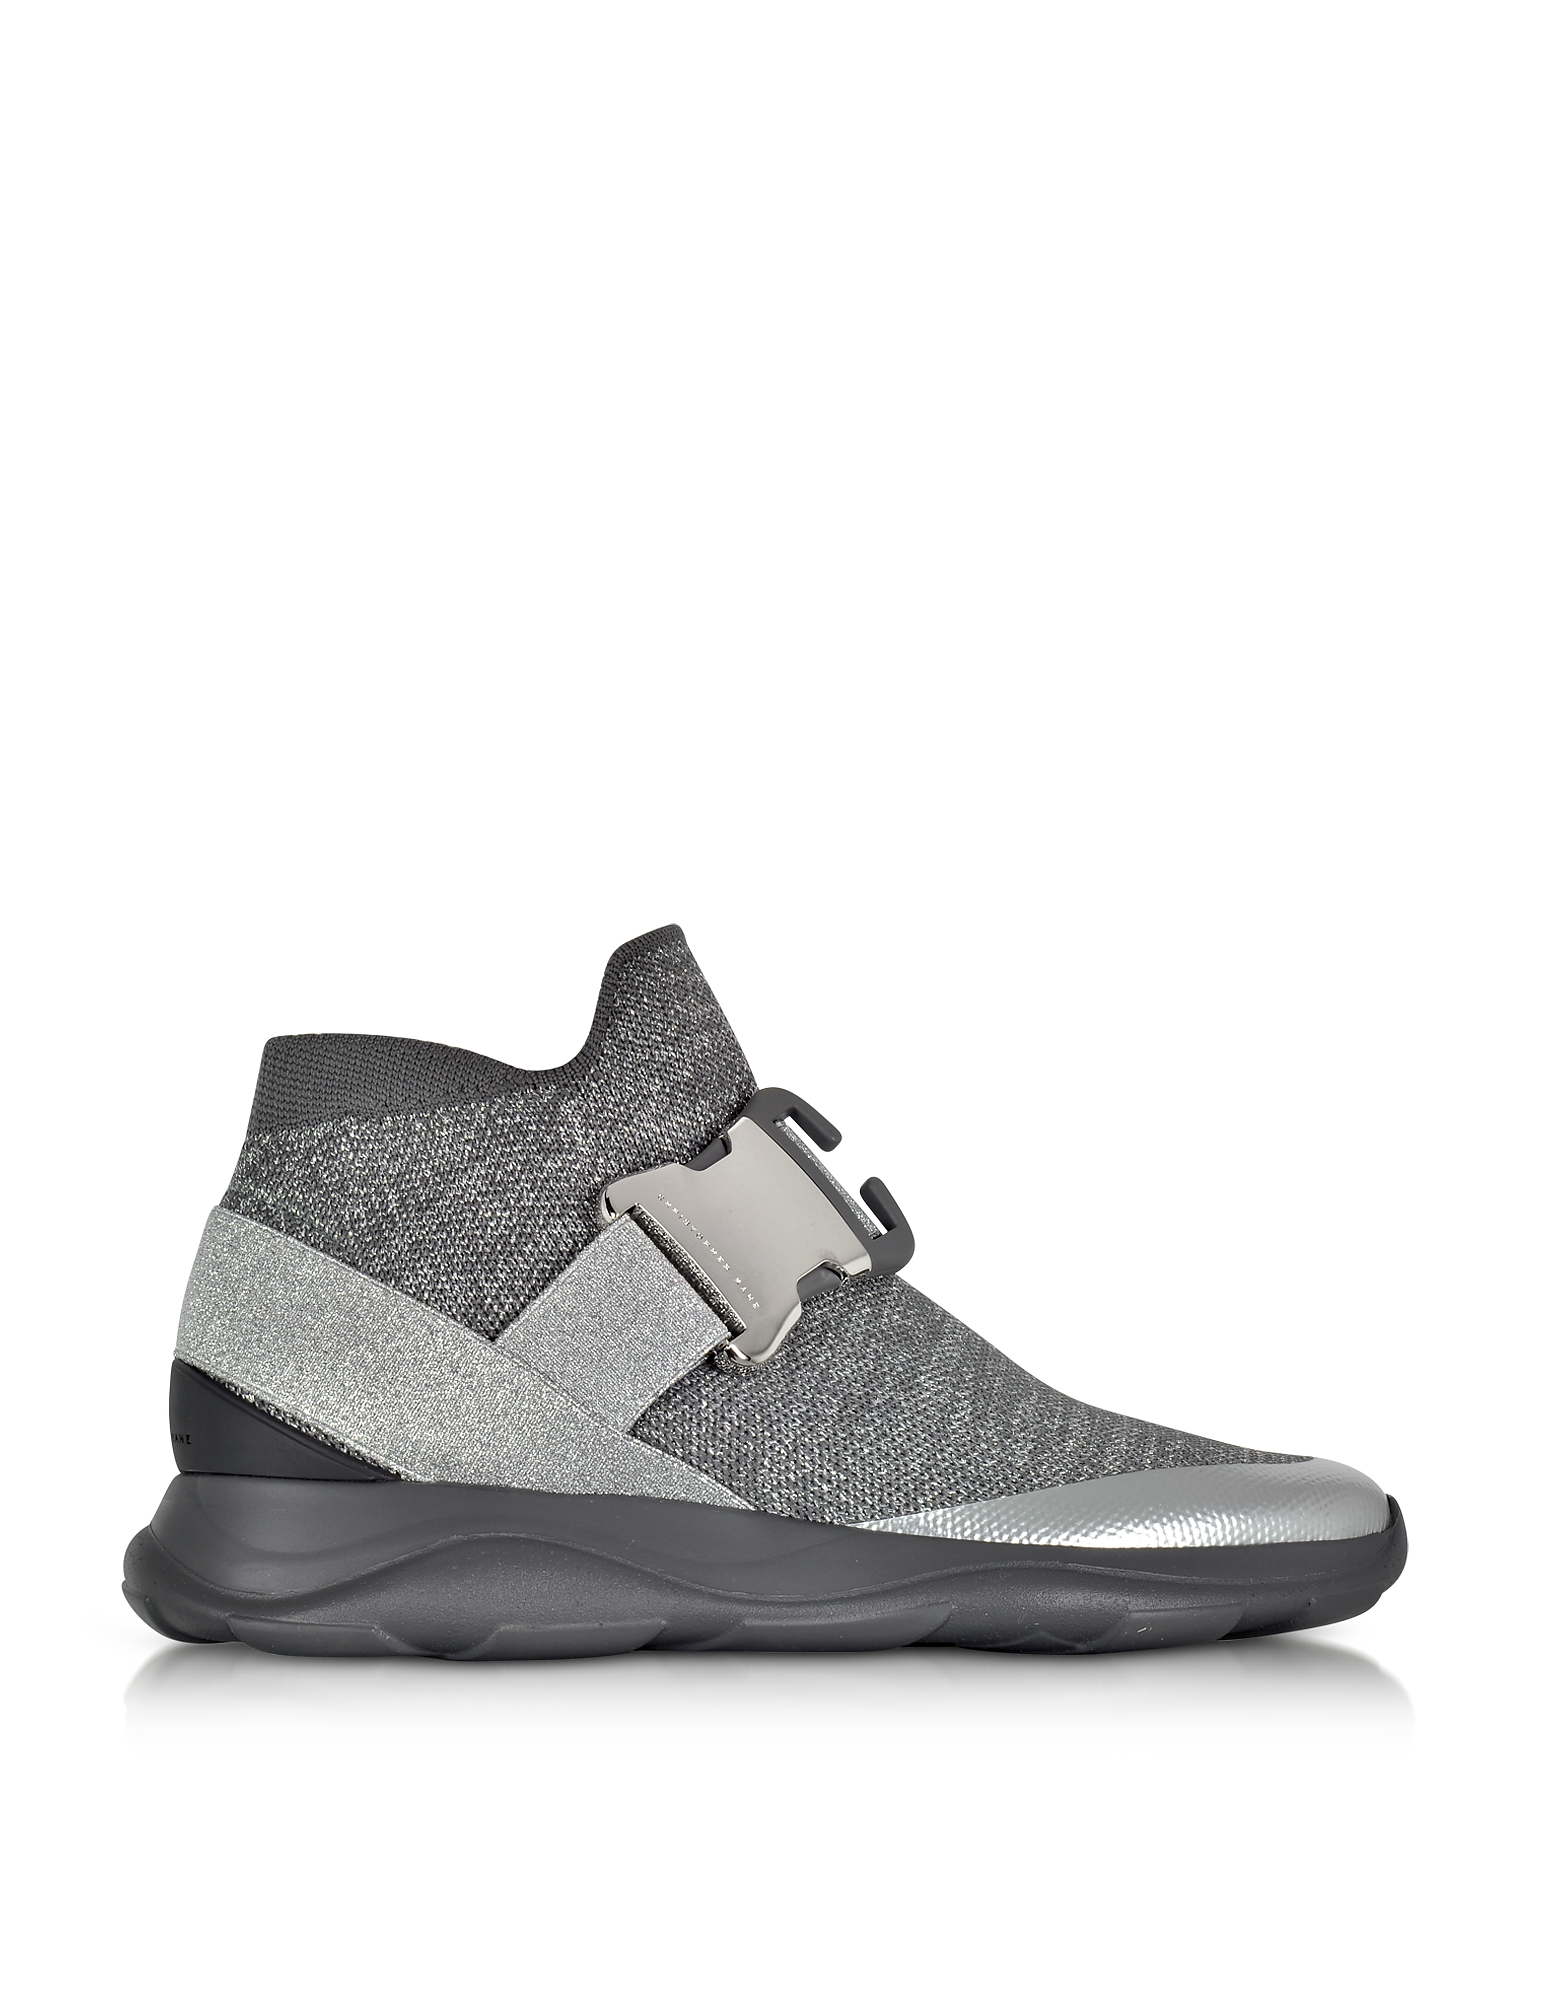 High top Lurex Grey & Silver Sneaker